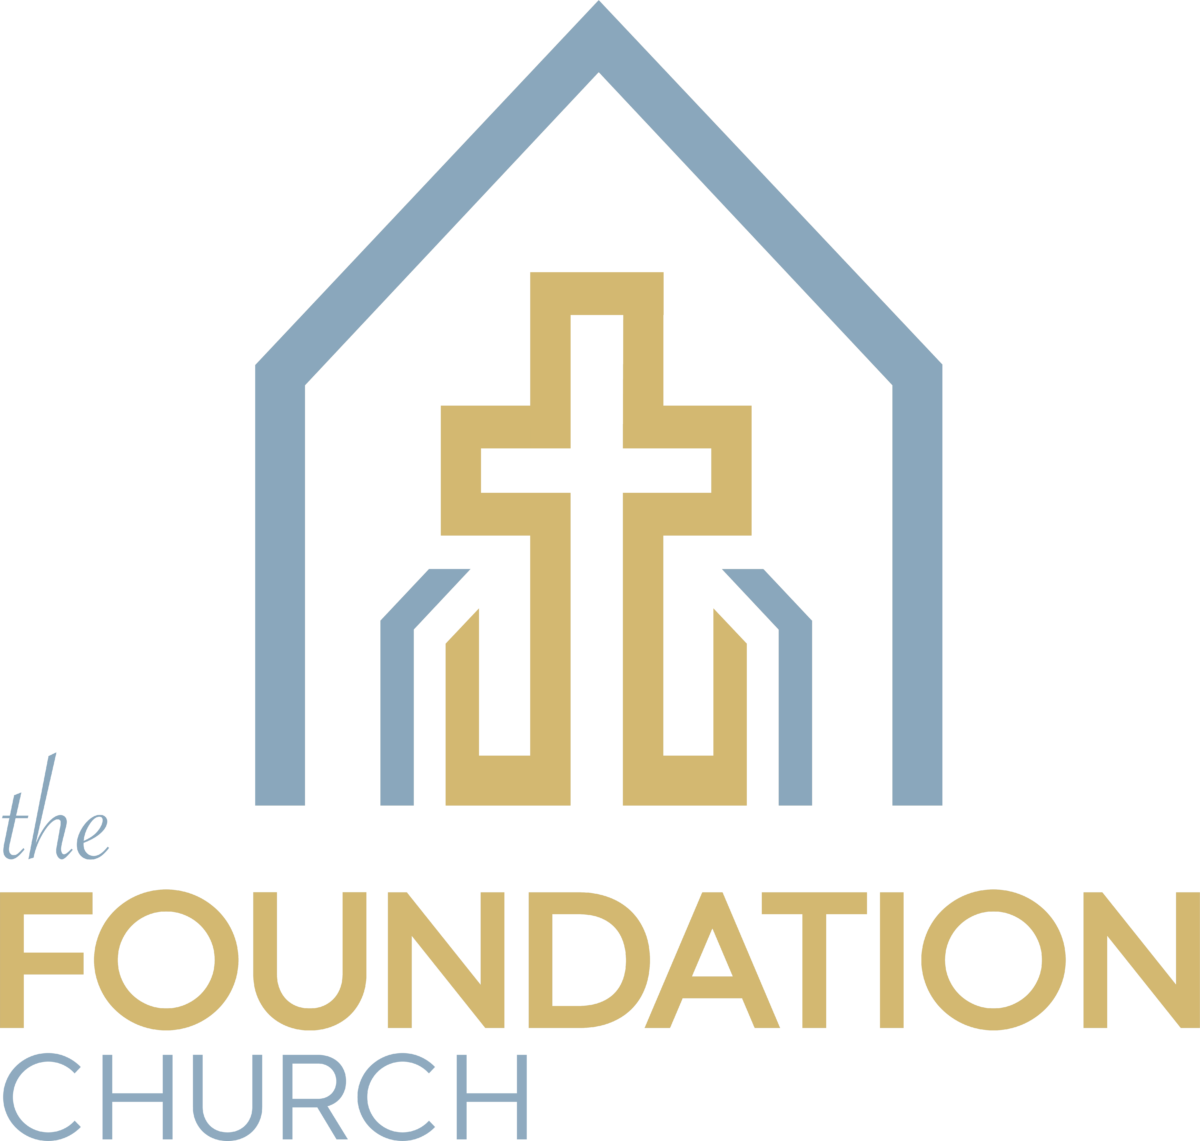 The Foundation Church